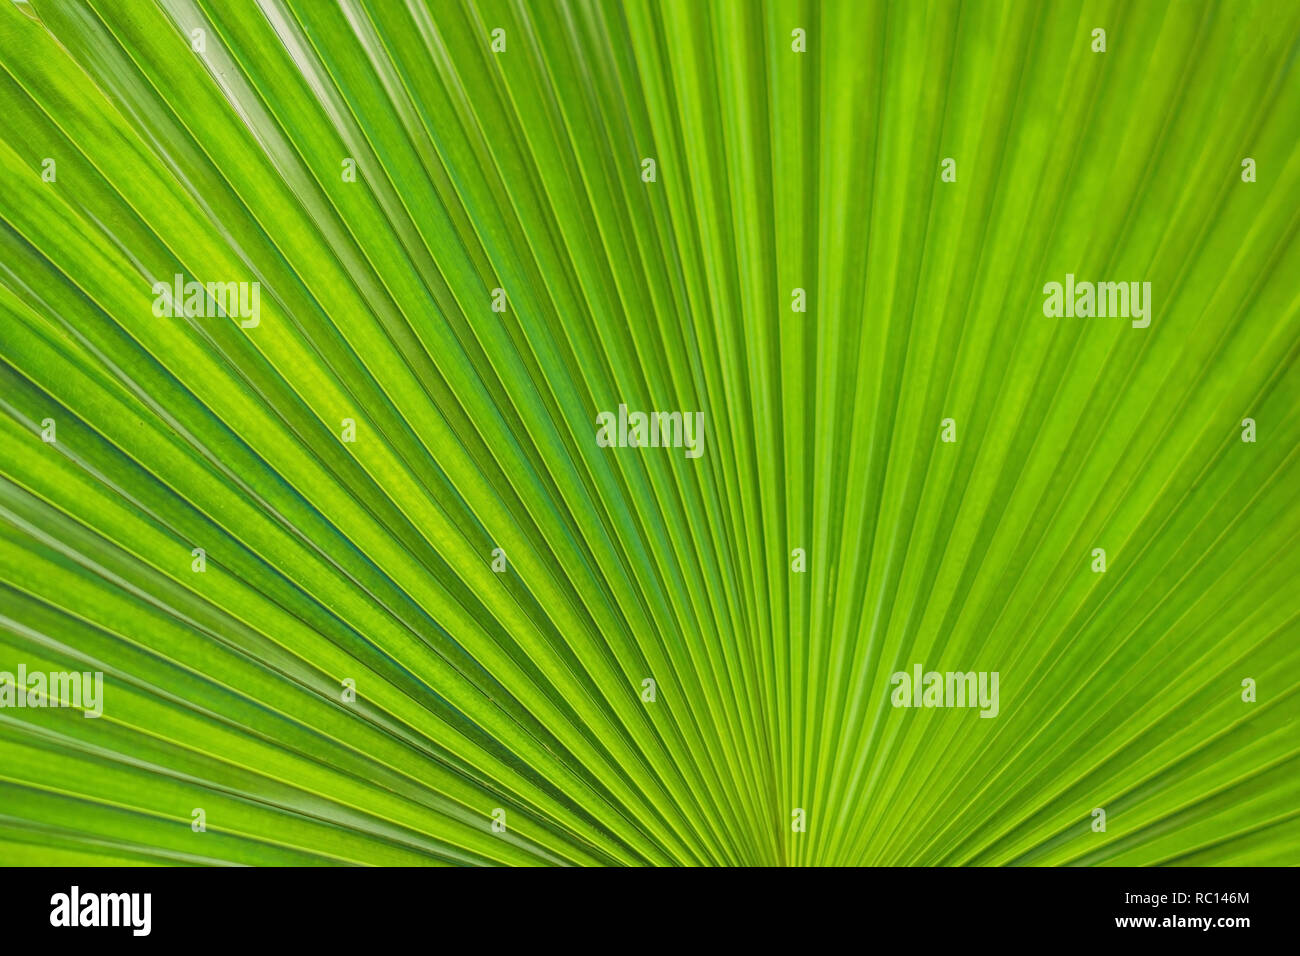 Green Footstool Palm Leaf through which the sun shines through - Stock Image